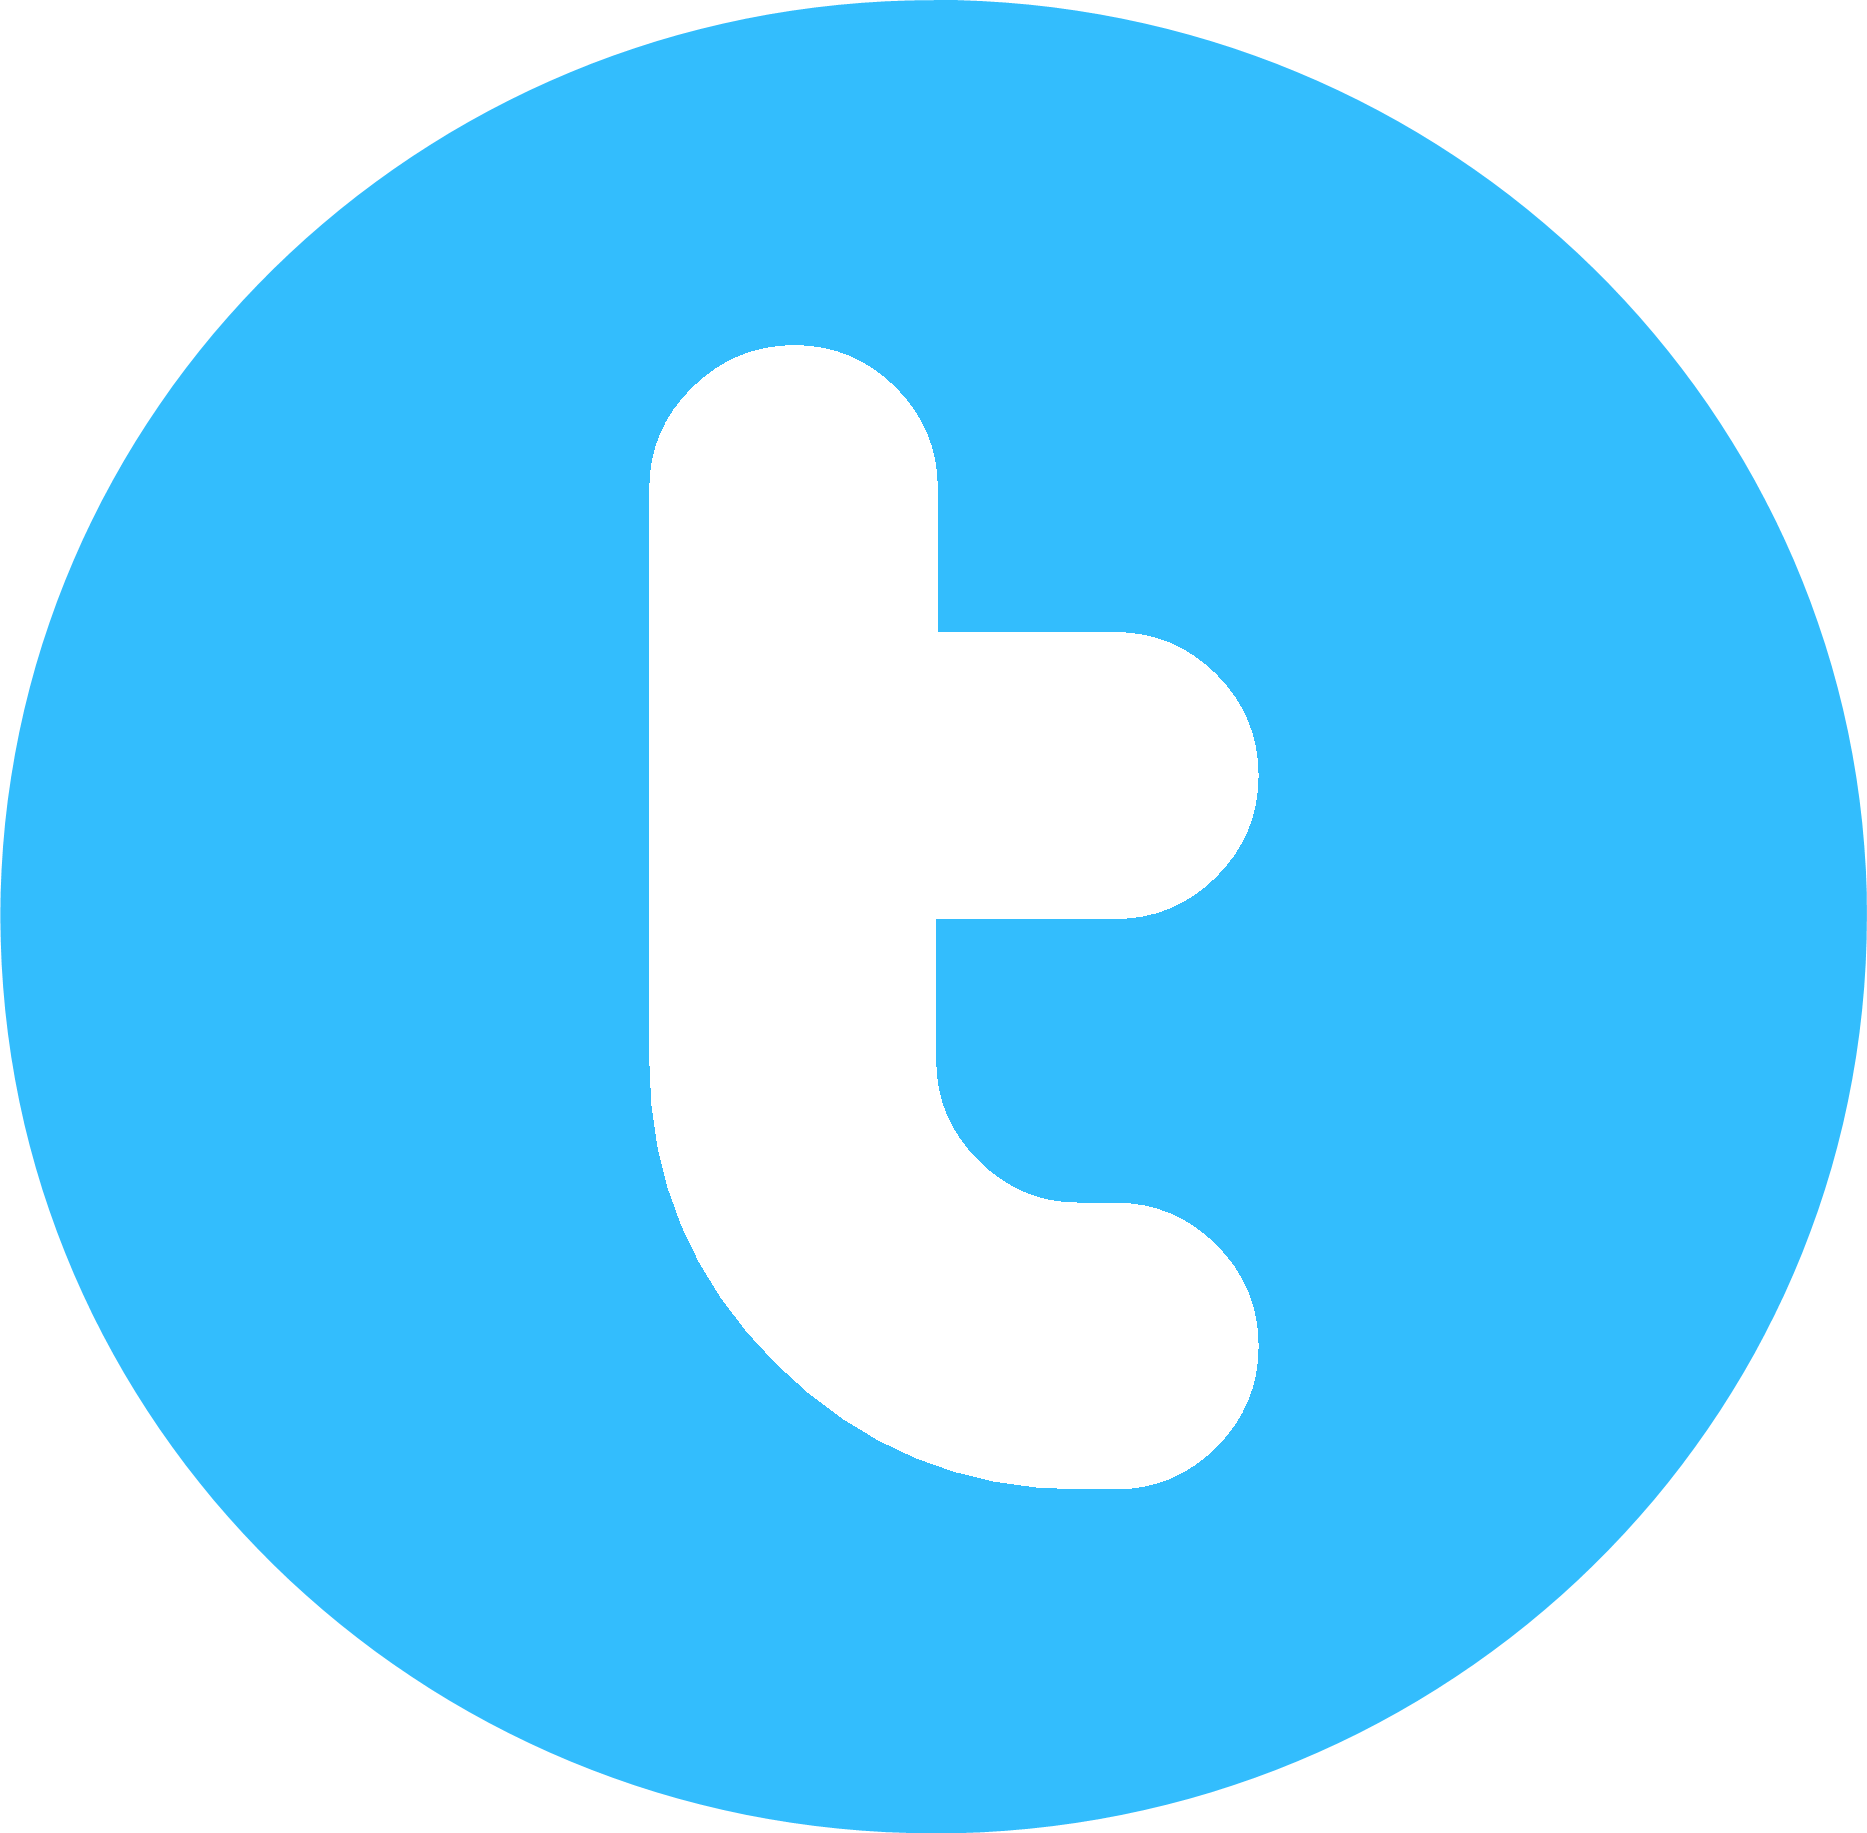 Free Twitter Transparent Png, Download Free Clip Art, Free.